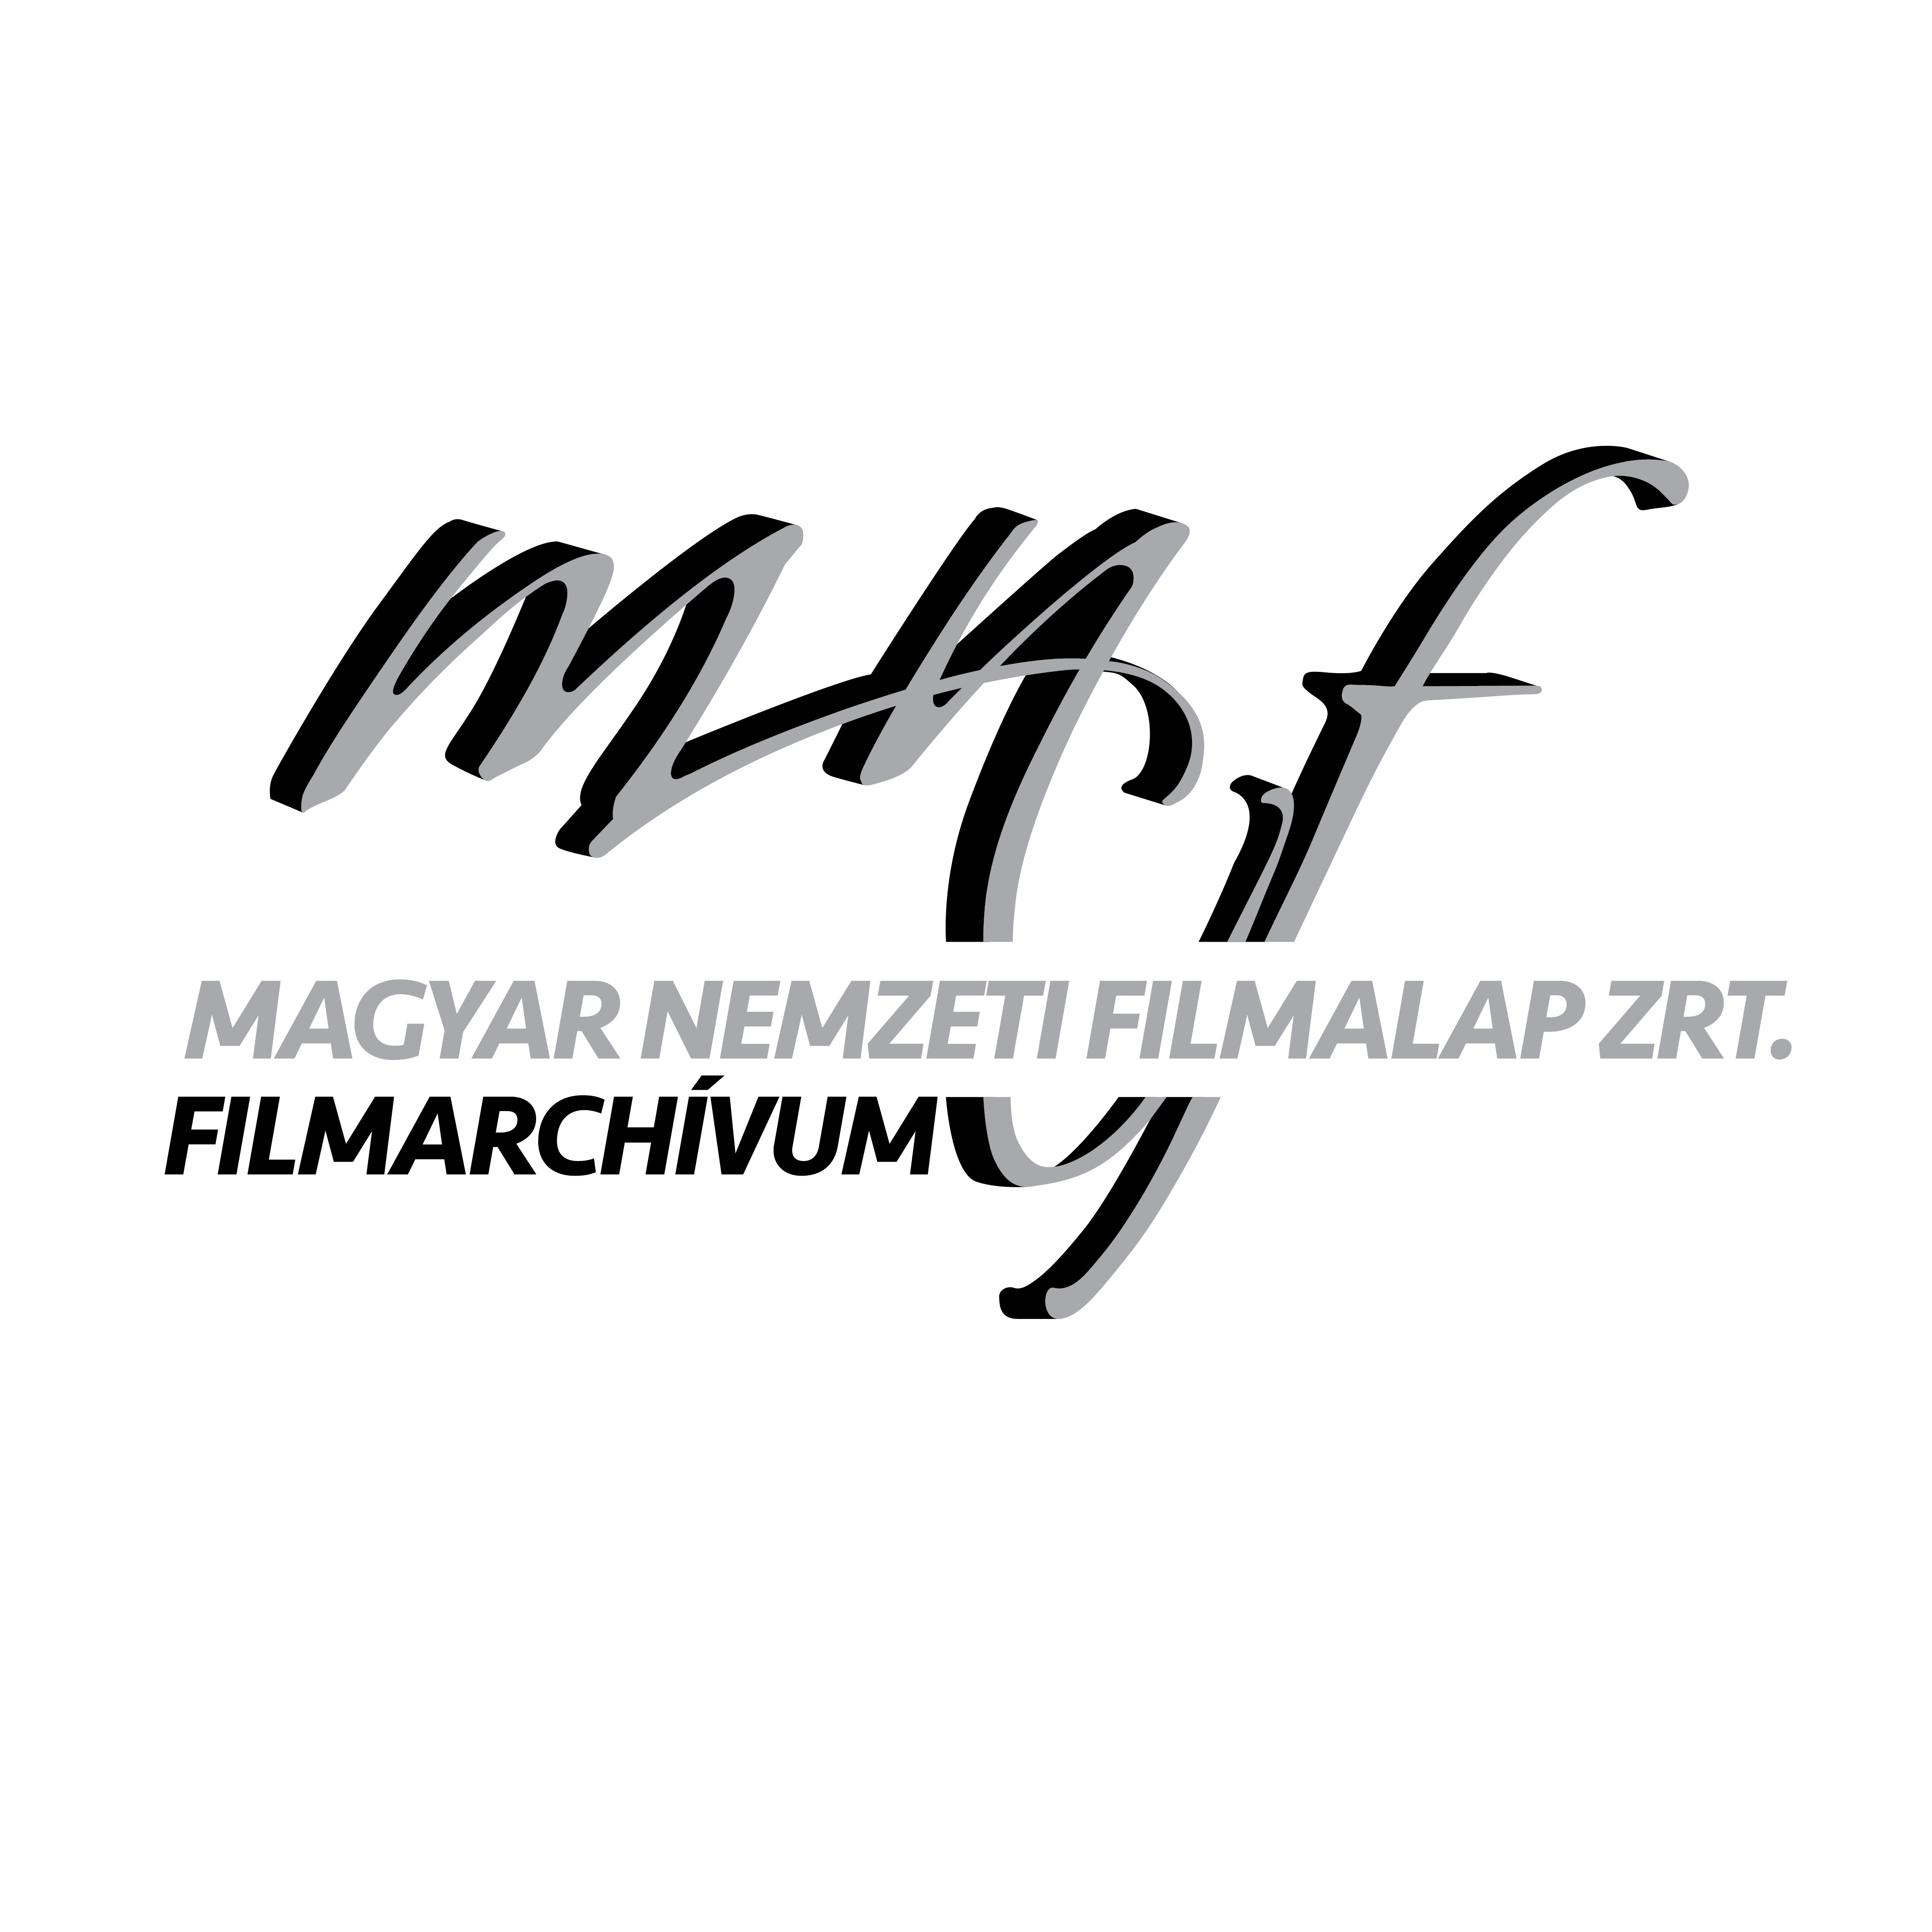 Hungarian National Film Archive